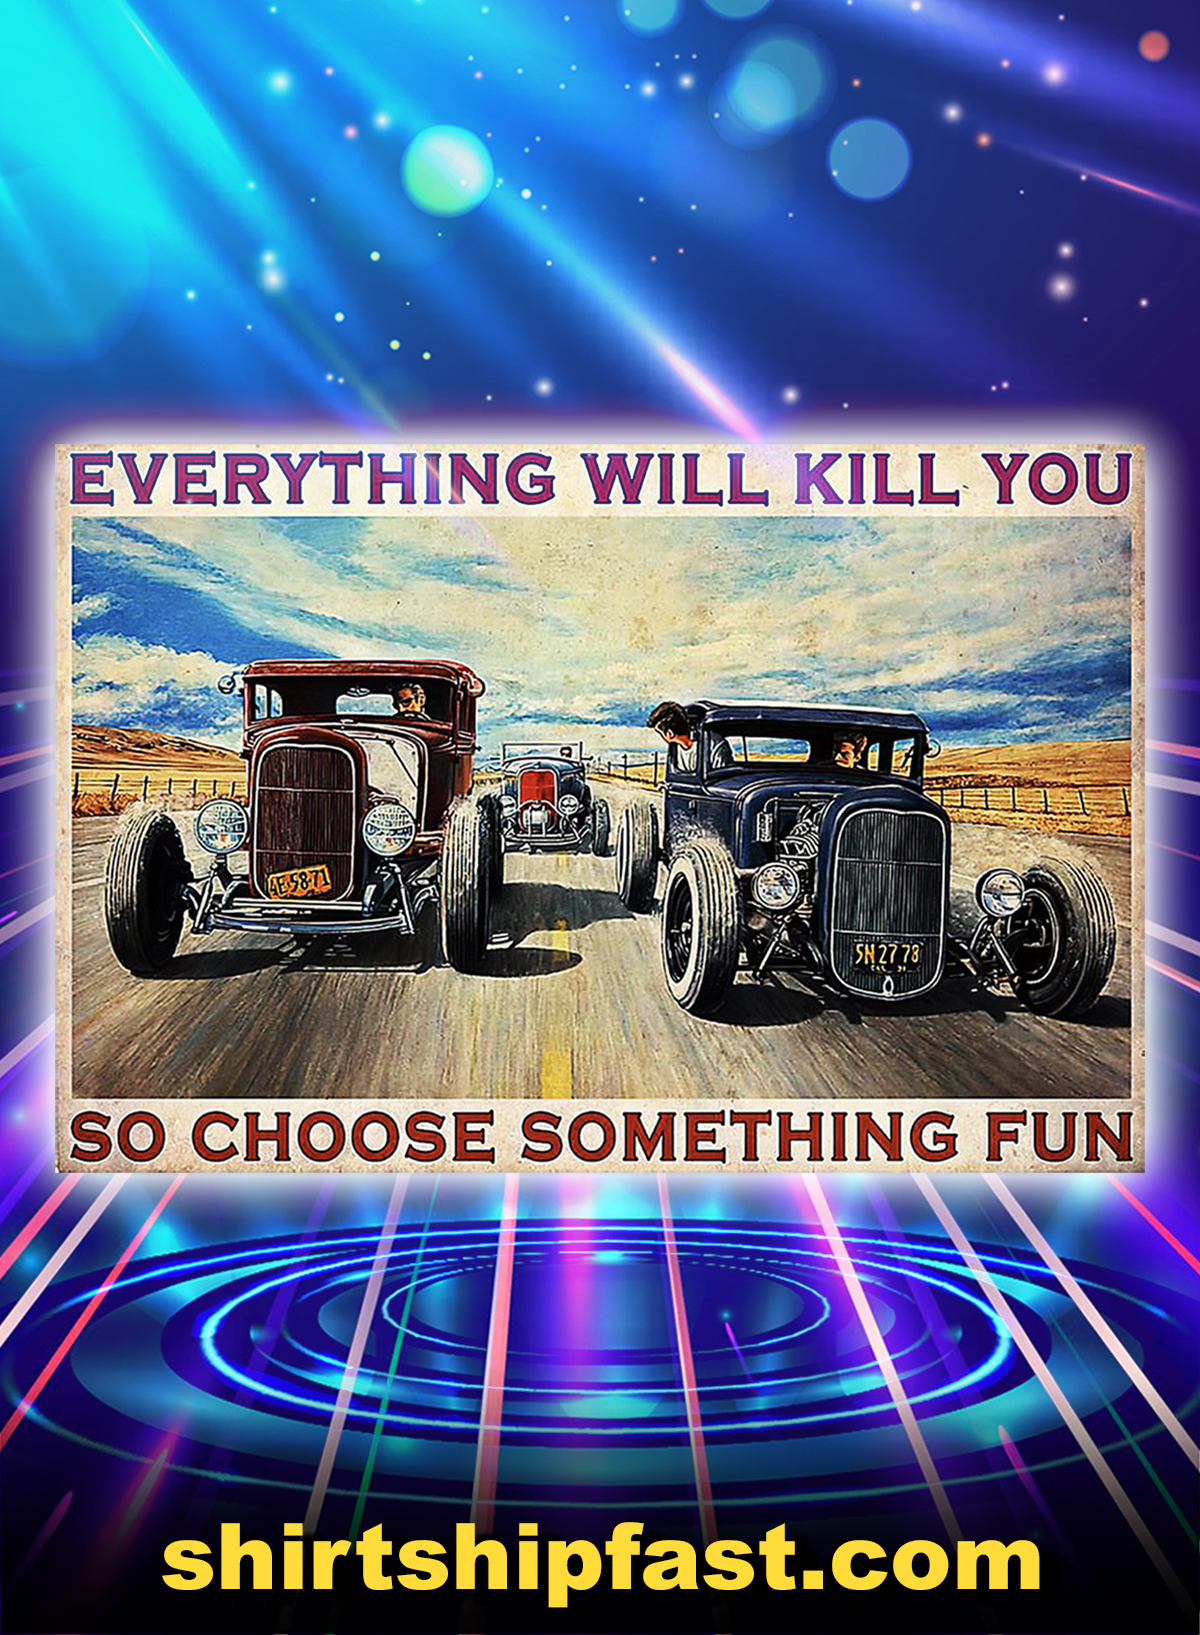 Hot rod racing everything will kill you so choose something fun poster - A1